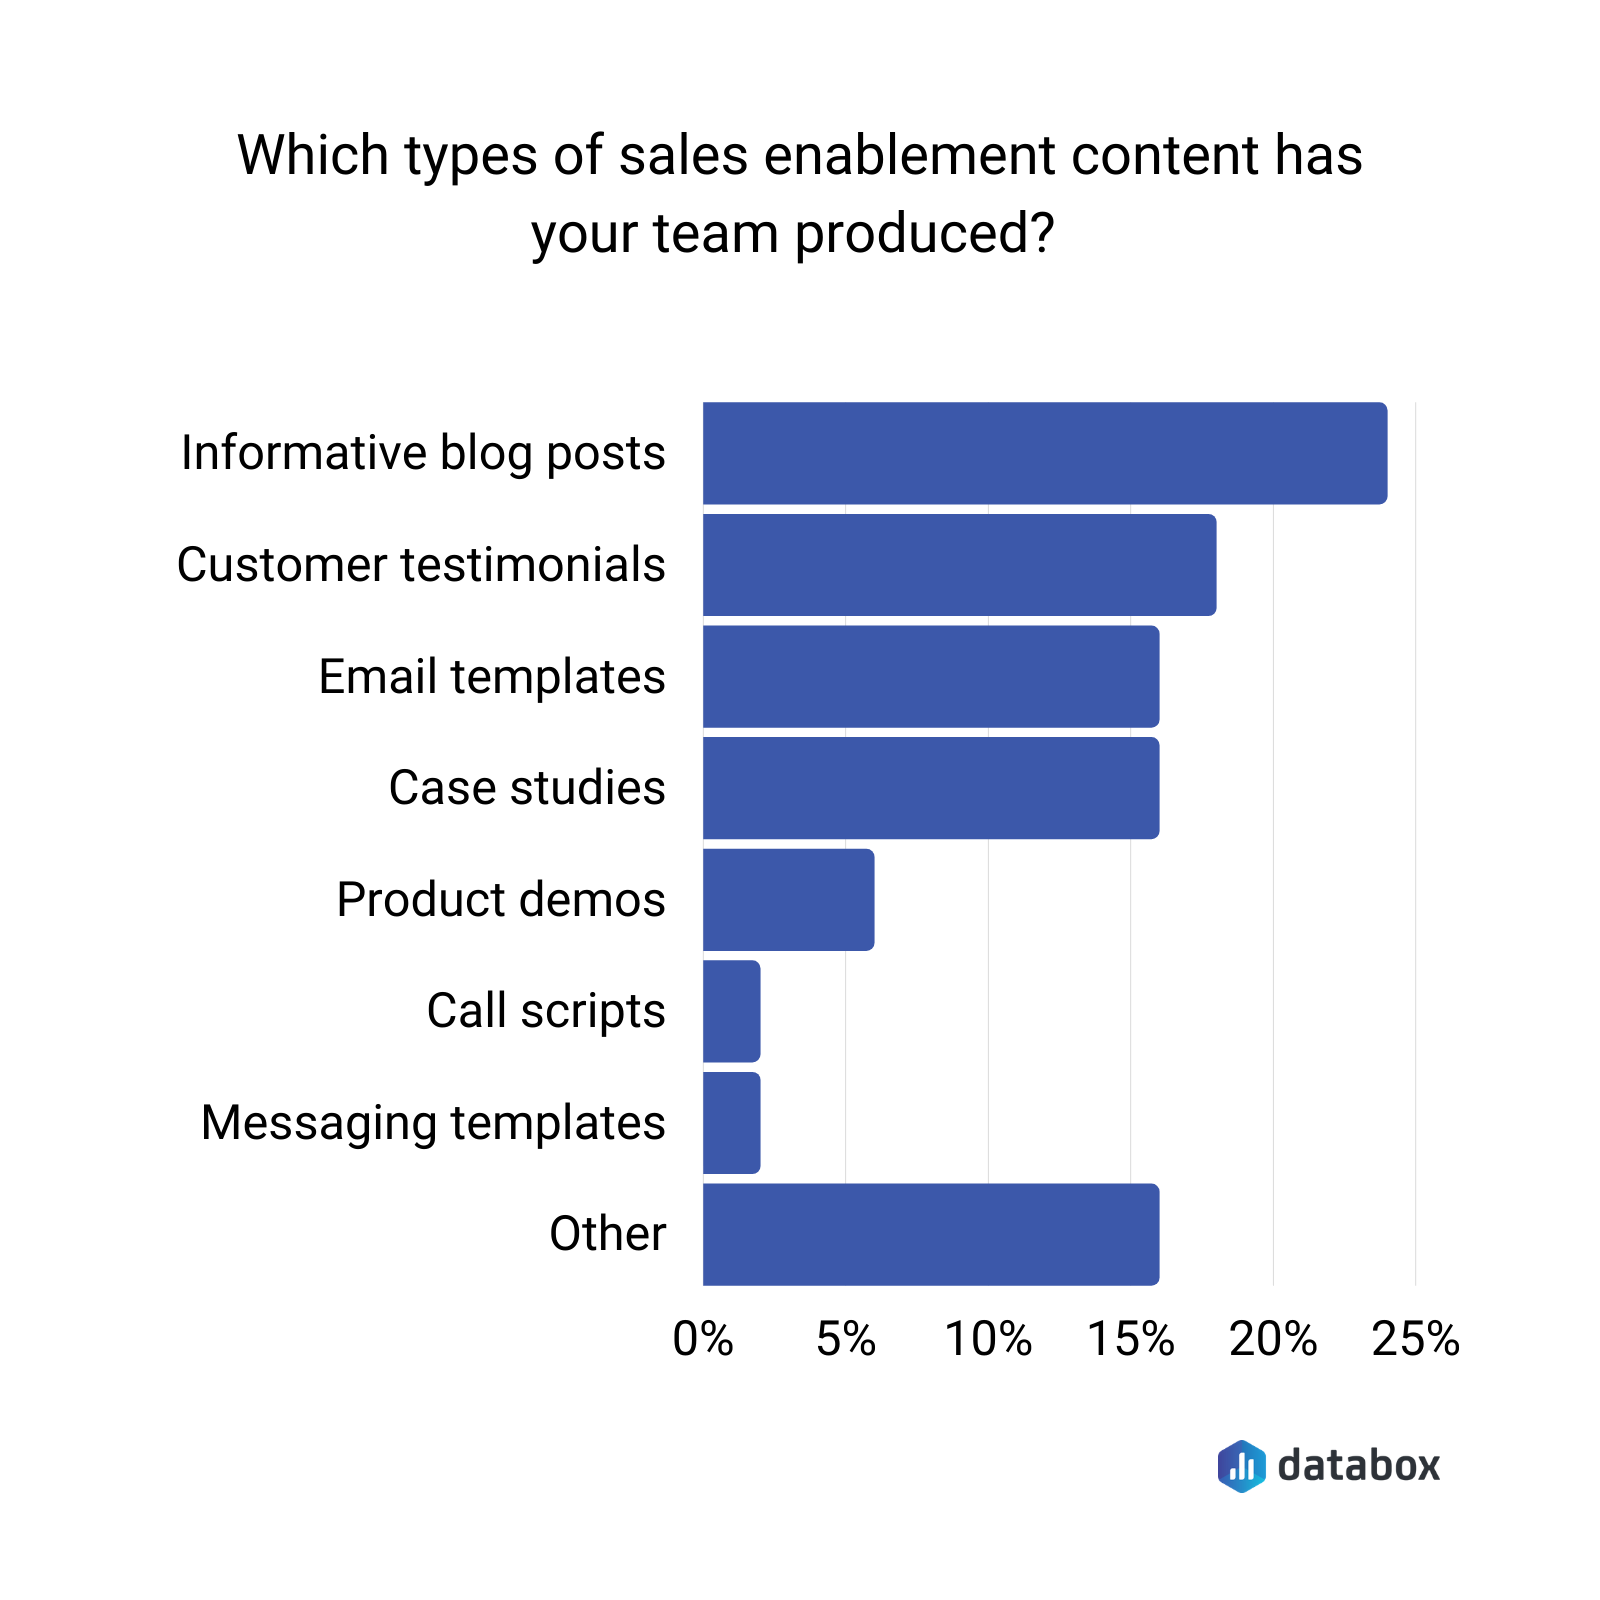 Types of sales enablement content marketing teams have produced - Databox survey results